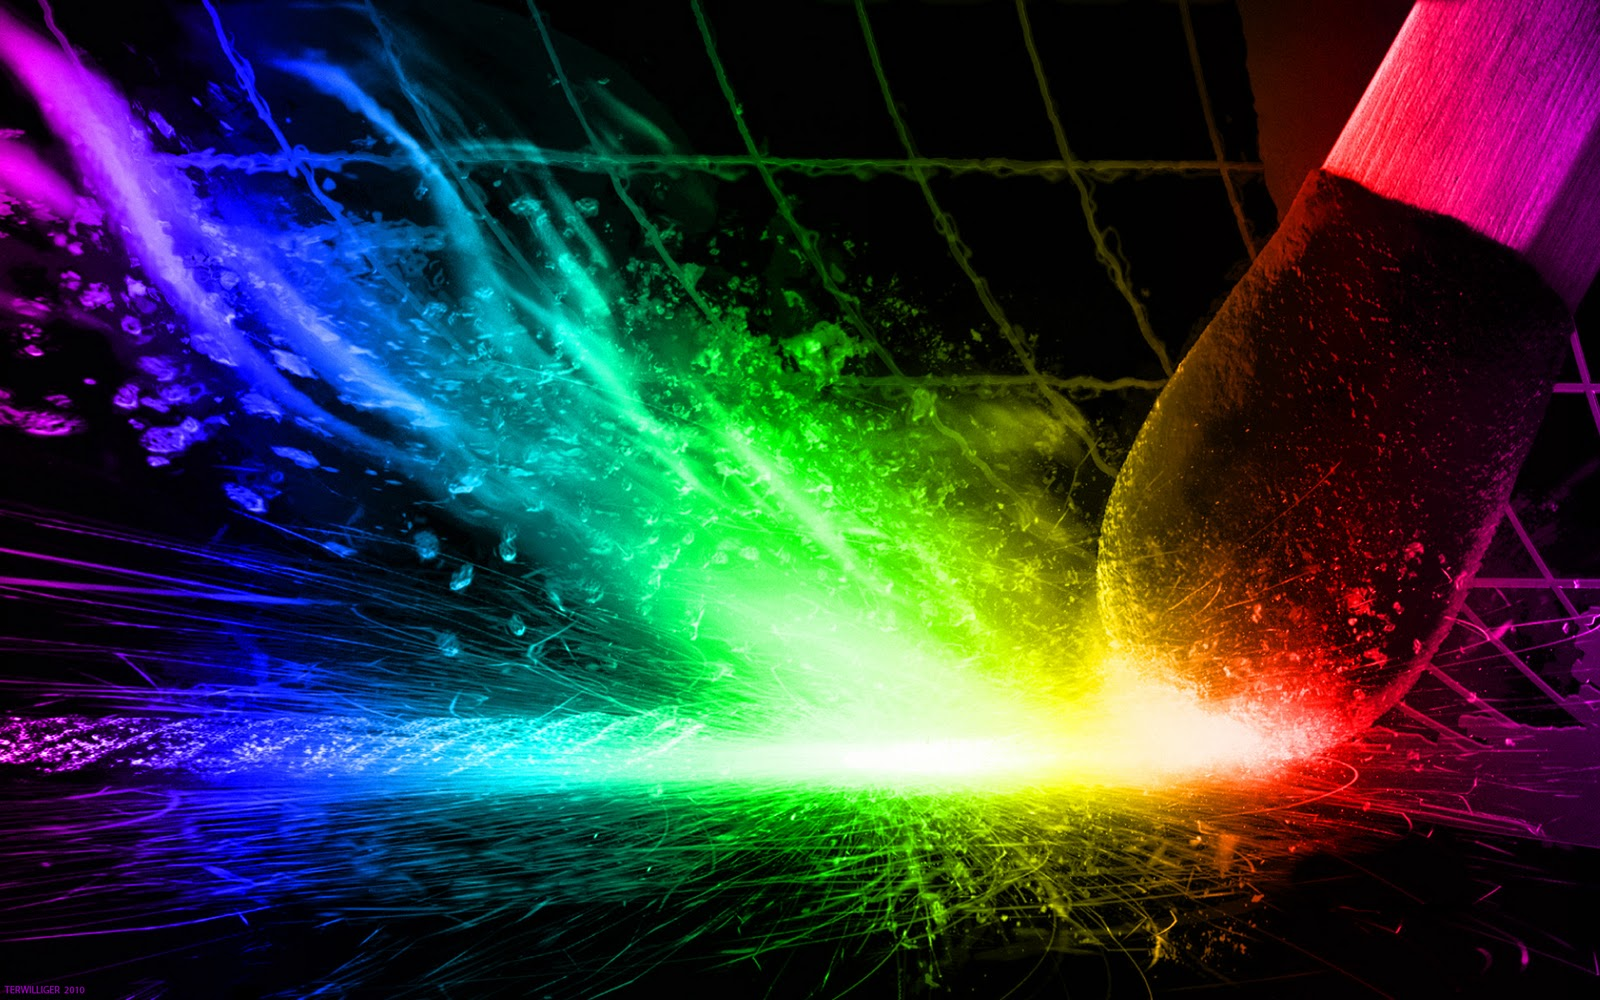 Techno Rainbow Background wallpaper wallpaper hd background 1600x1000